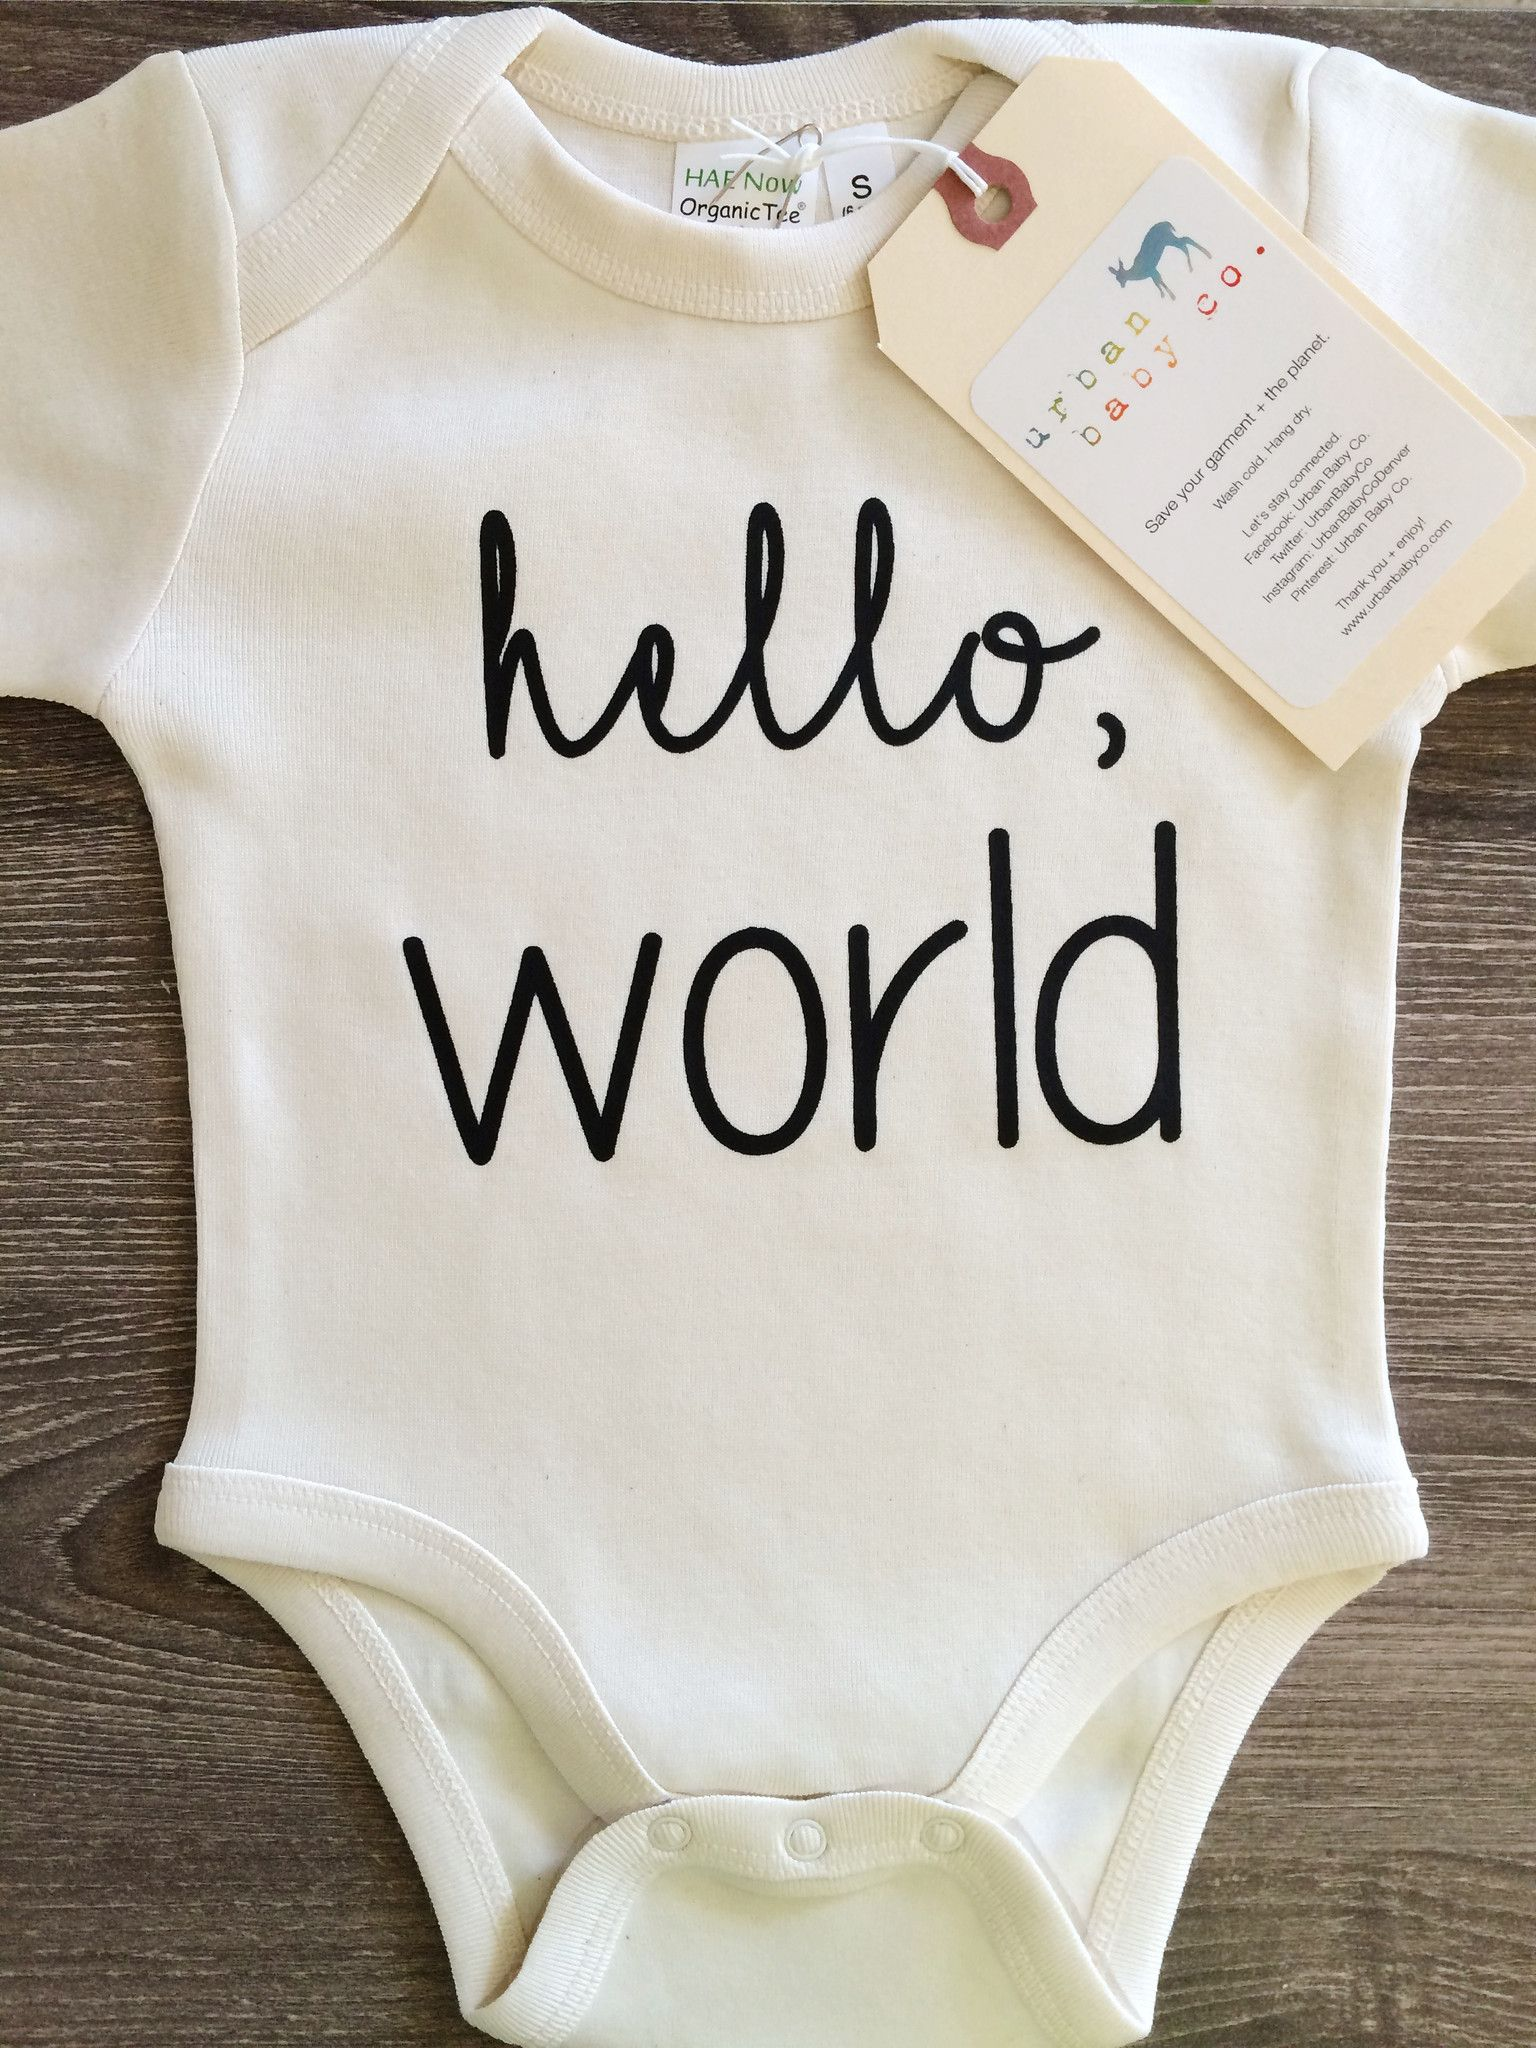 Hello World Baby, Boy, Girl, Unisex, Gender Neutral, Infant